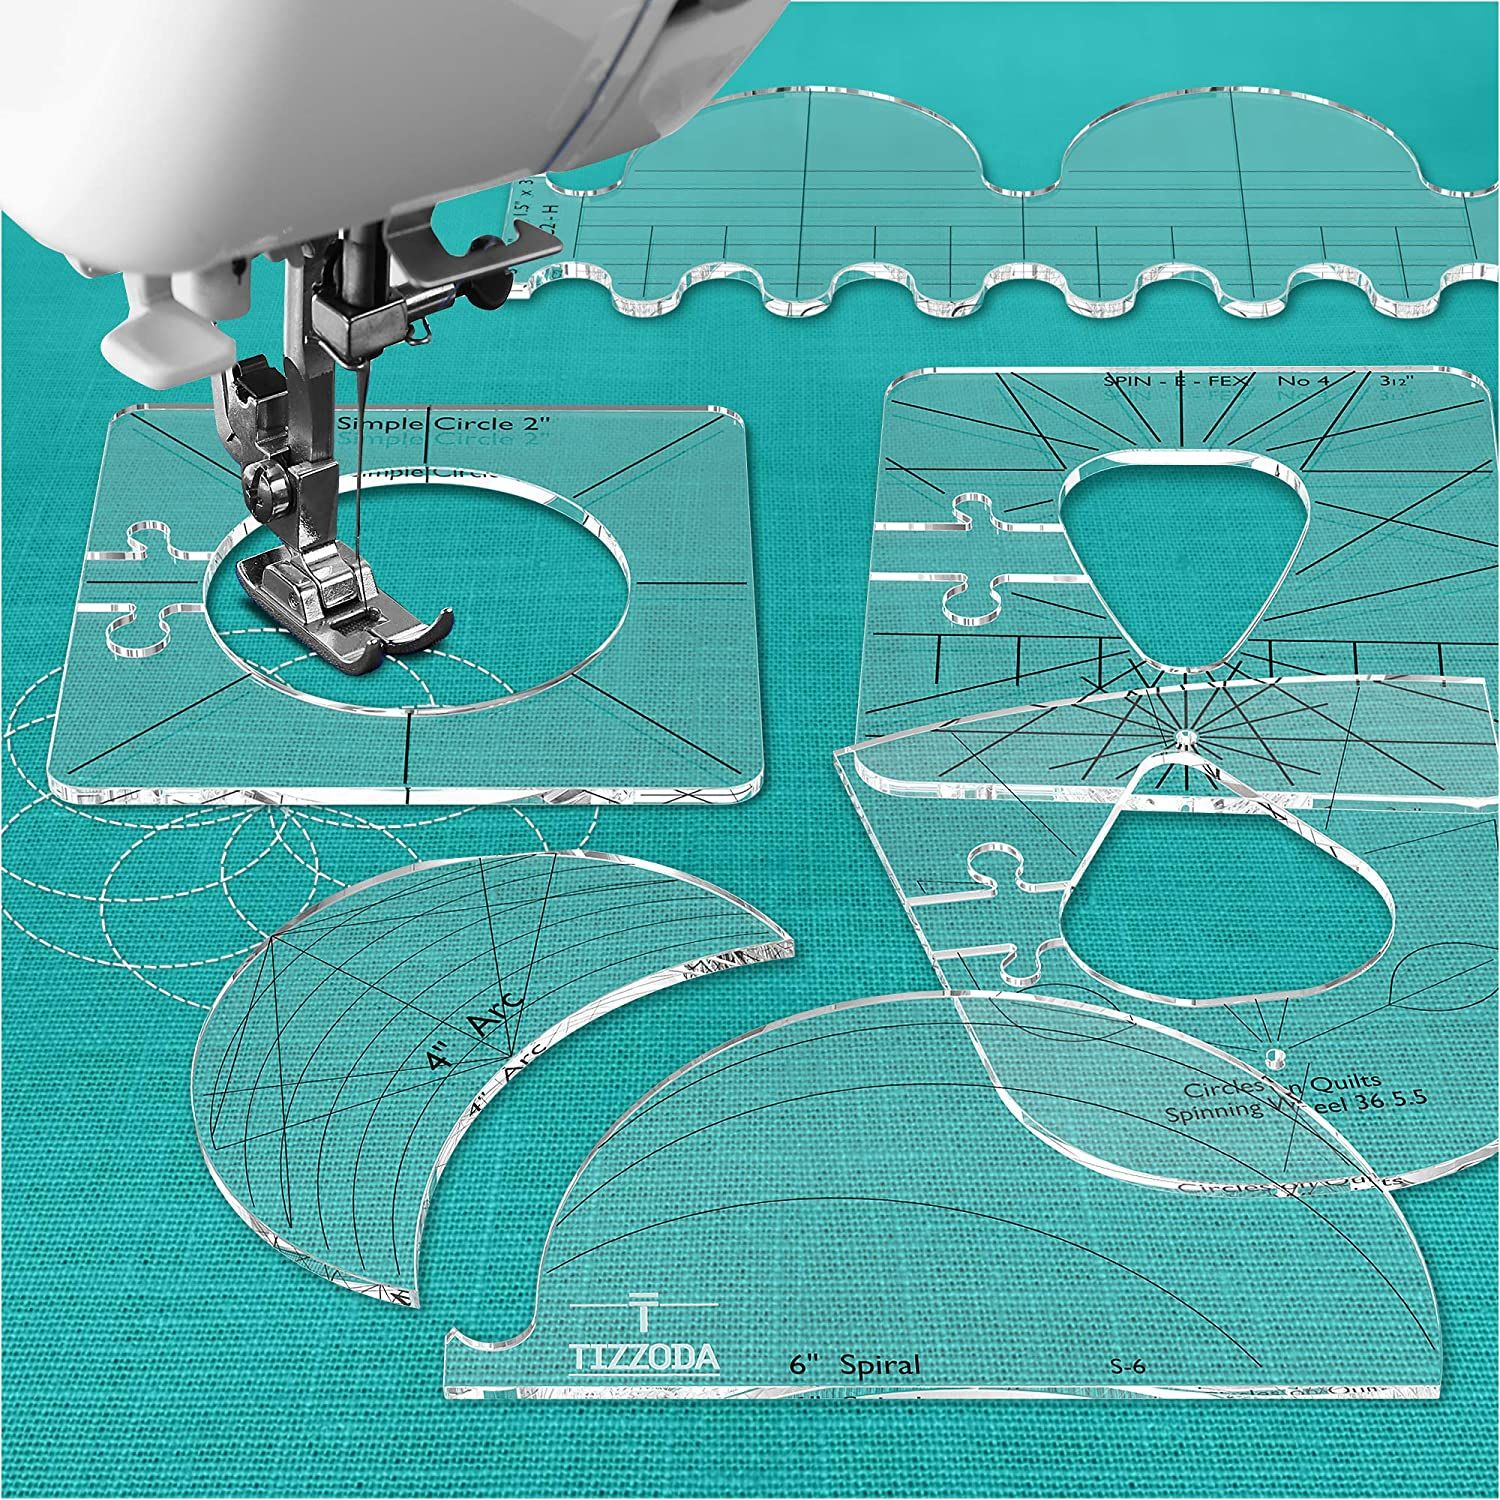 Quilting Tool Template Tool for Quilting Sewing Tools New Ruler Template Sampler Set for Domestic Sewing Machine by VNHOME Set 4Pcs # Rl-4X